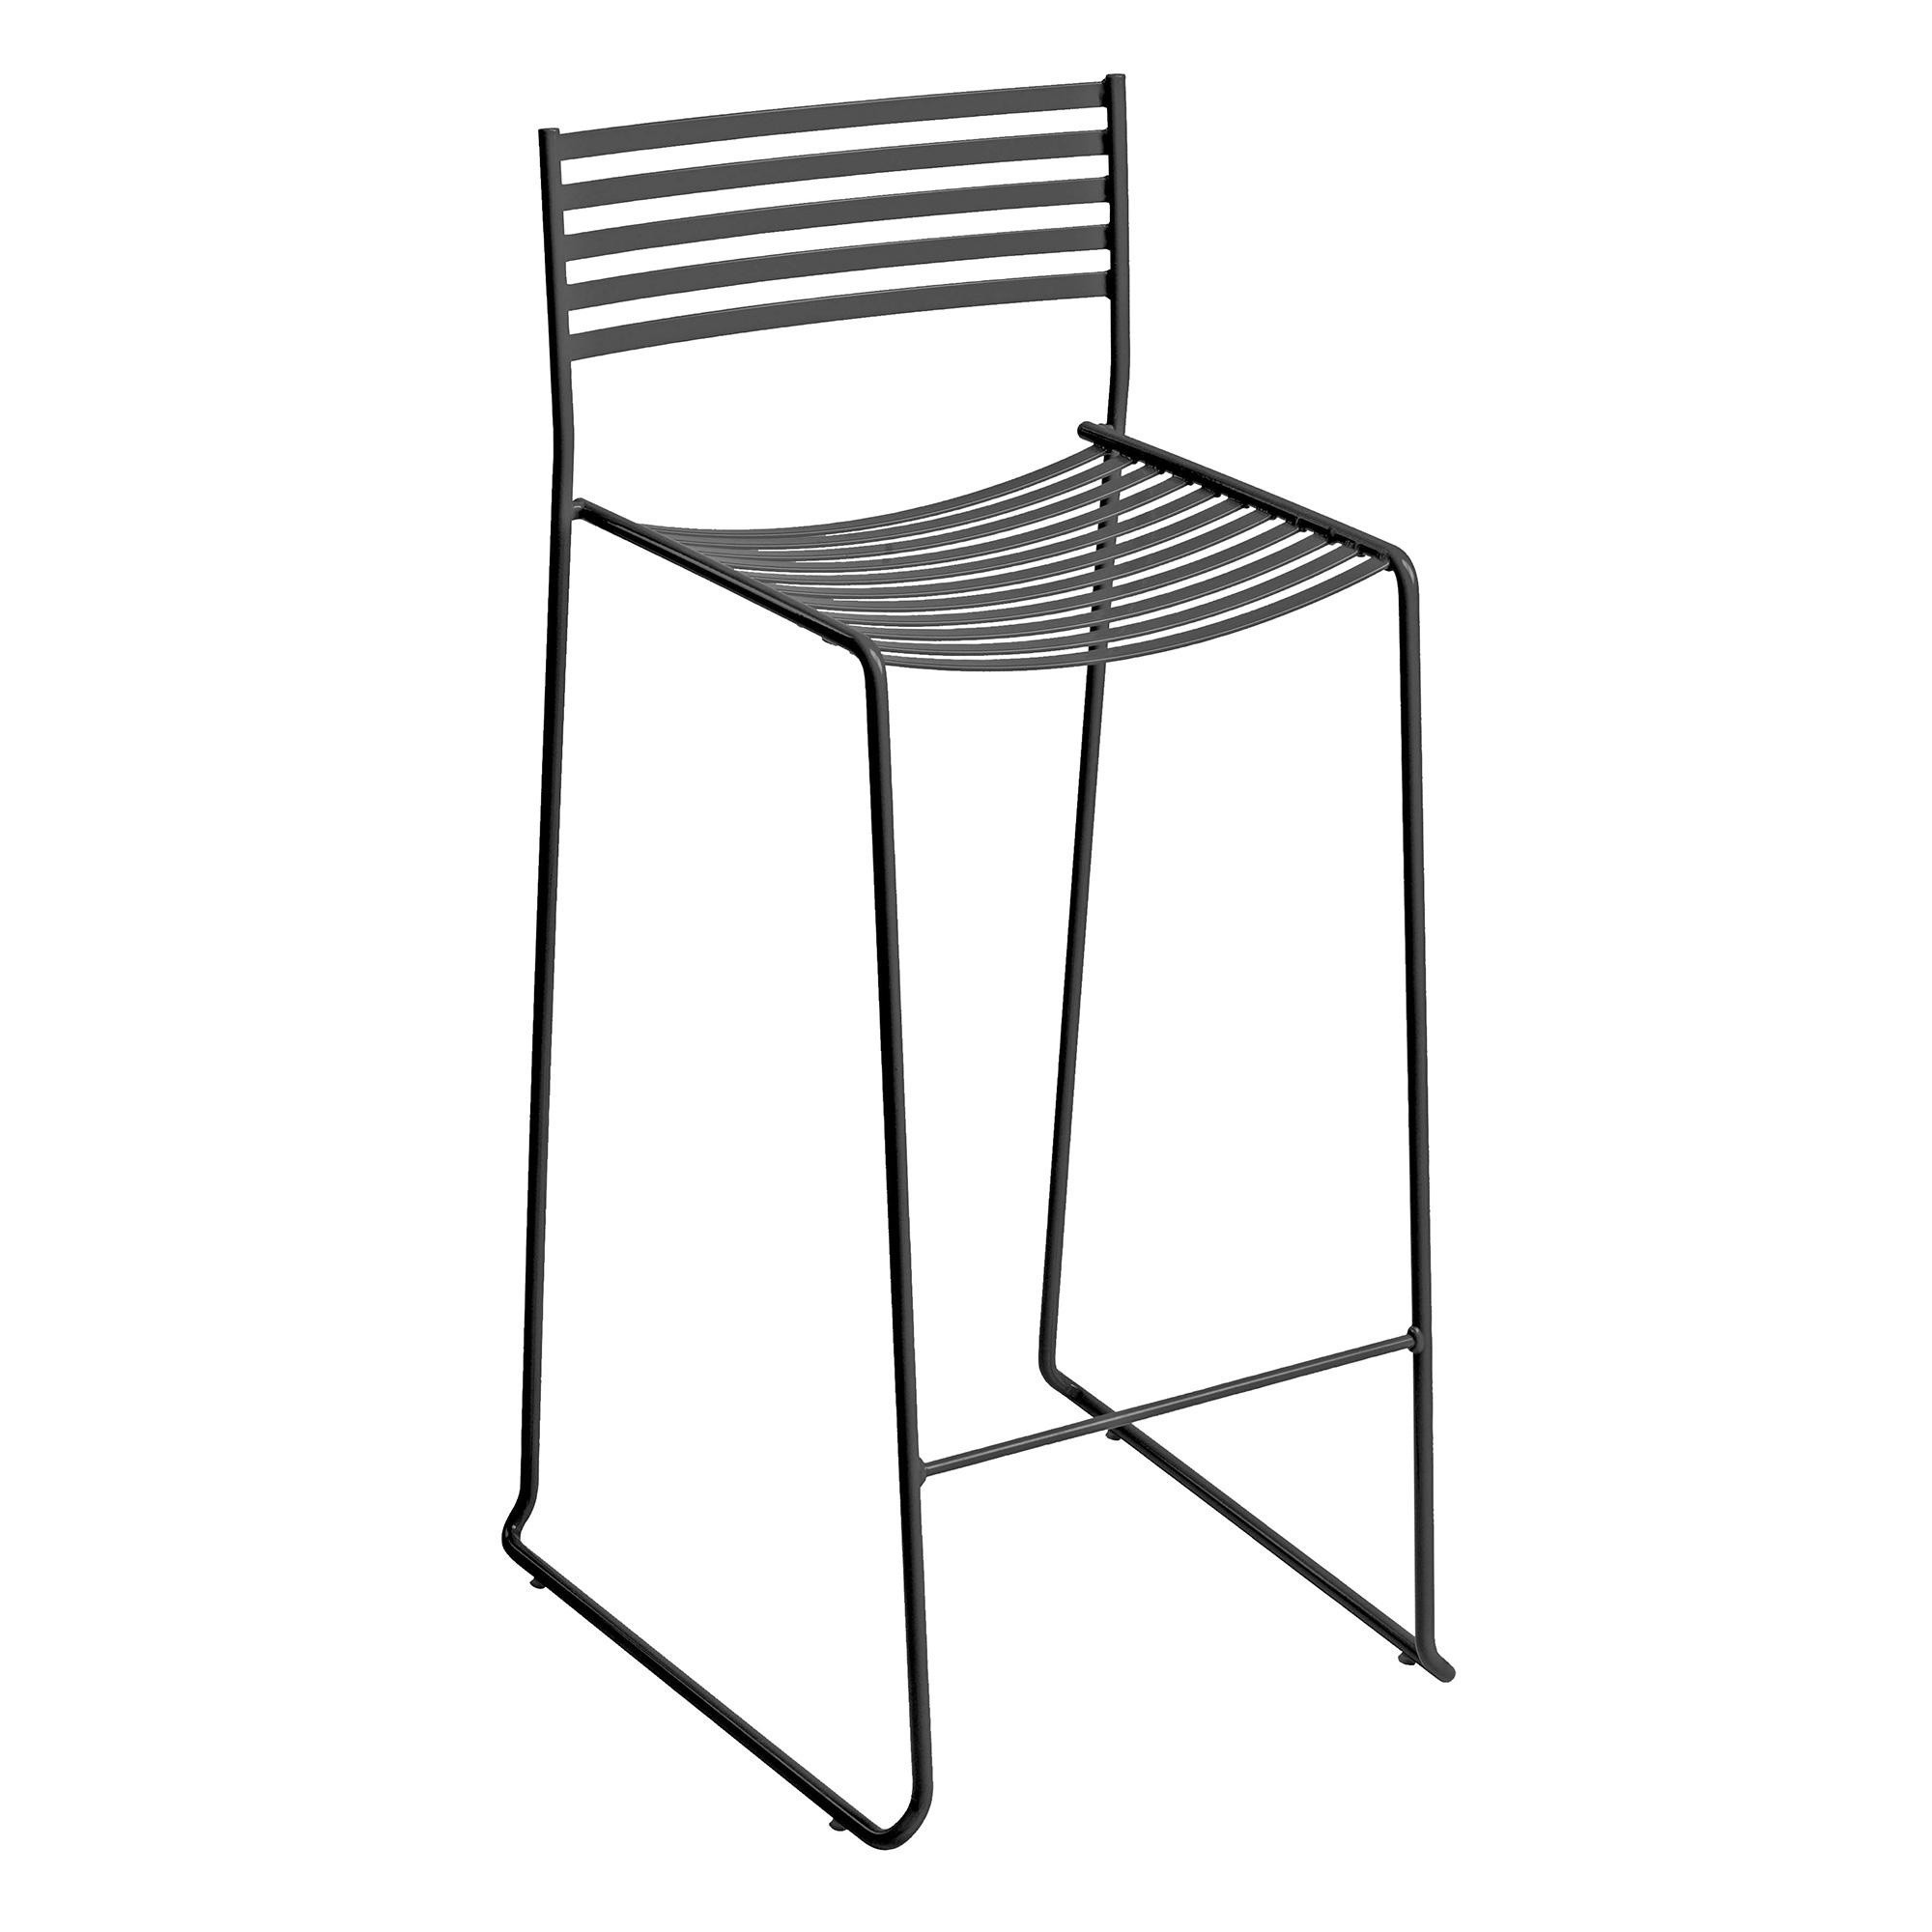 Bar stool drawing for Taburete dwg